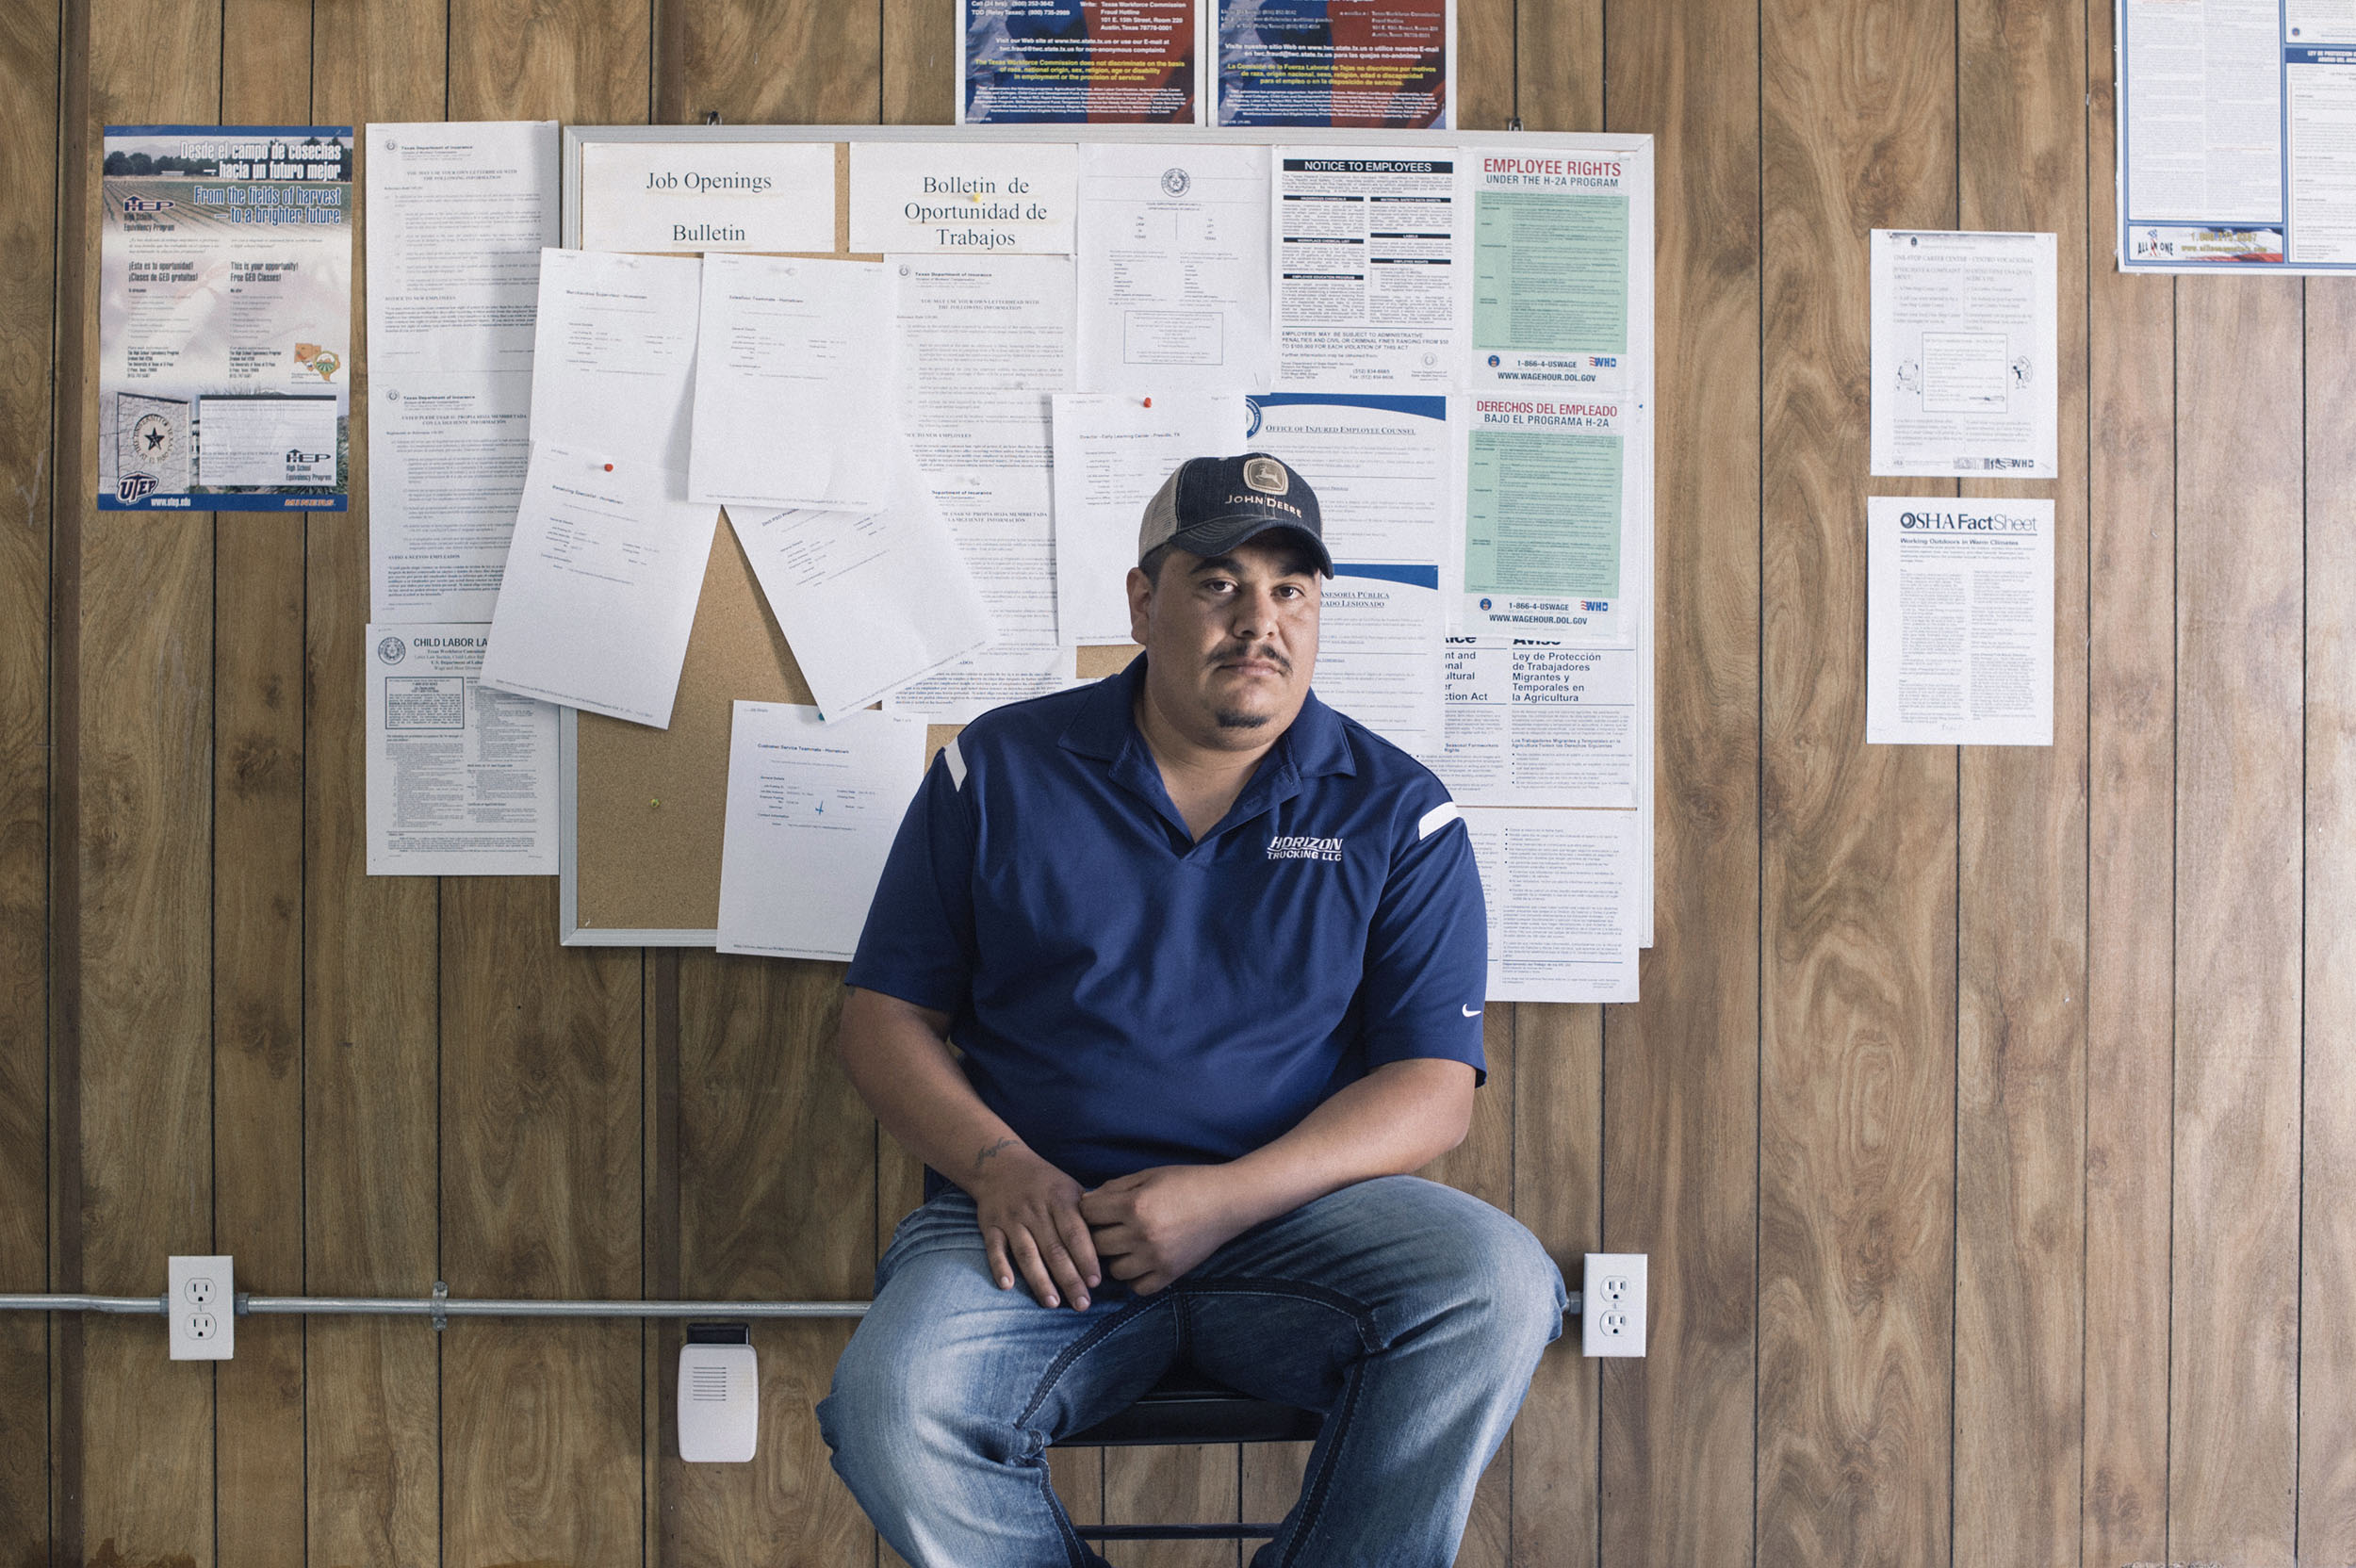 Jesus Carrasco has moved to Presidio from Lovington, New Mexico, hoping to work on the pipeline.